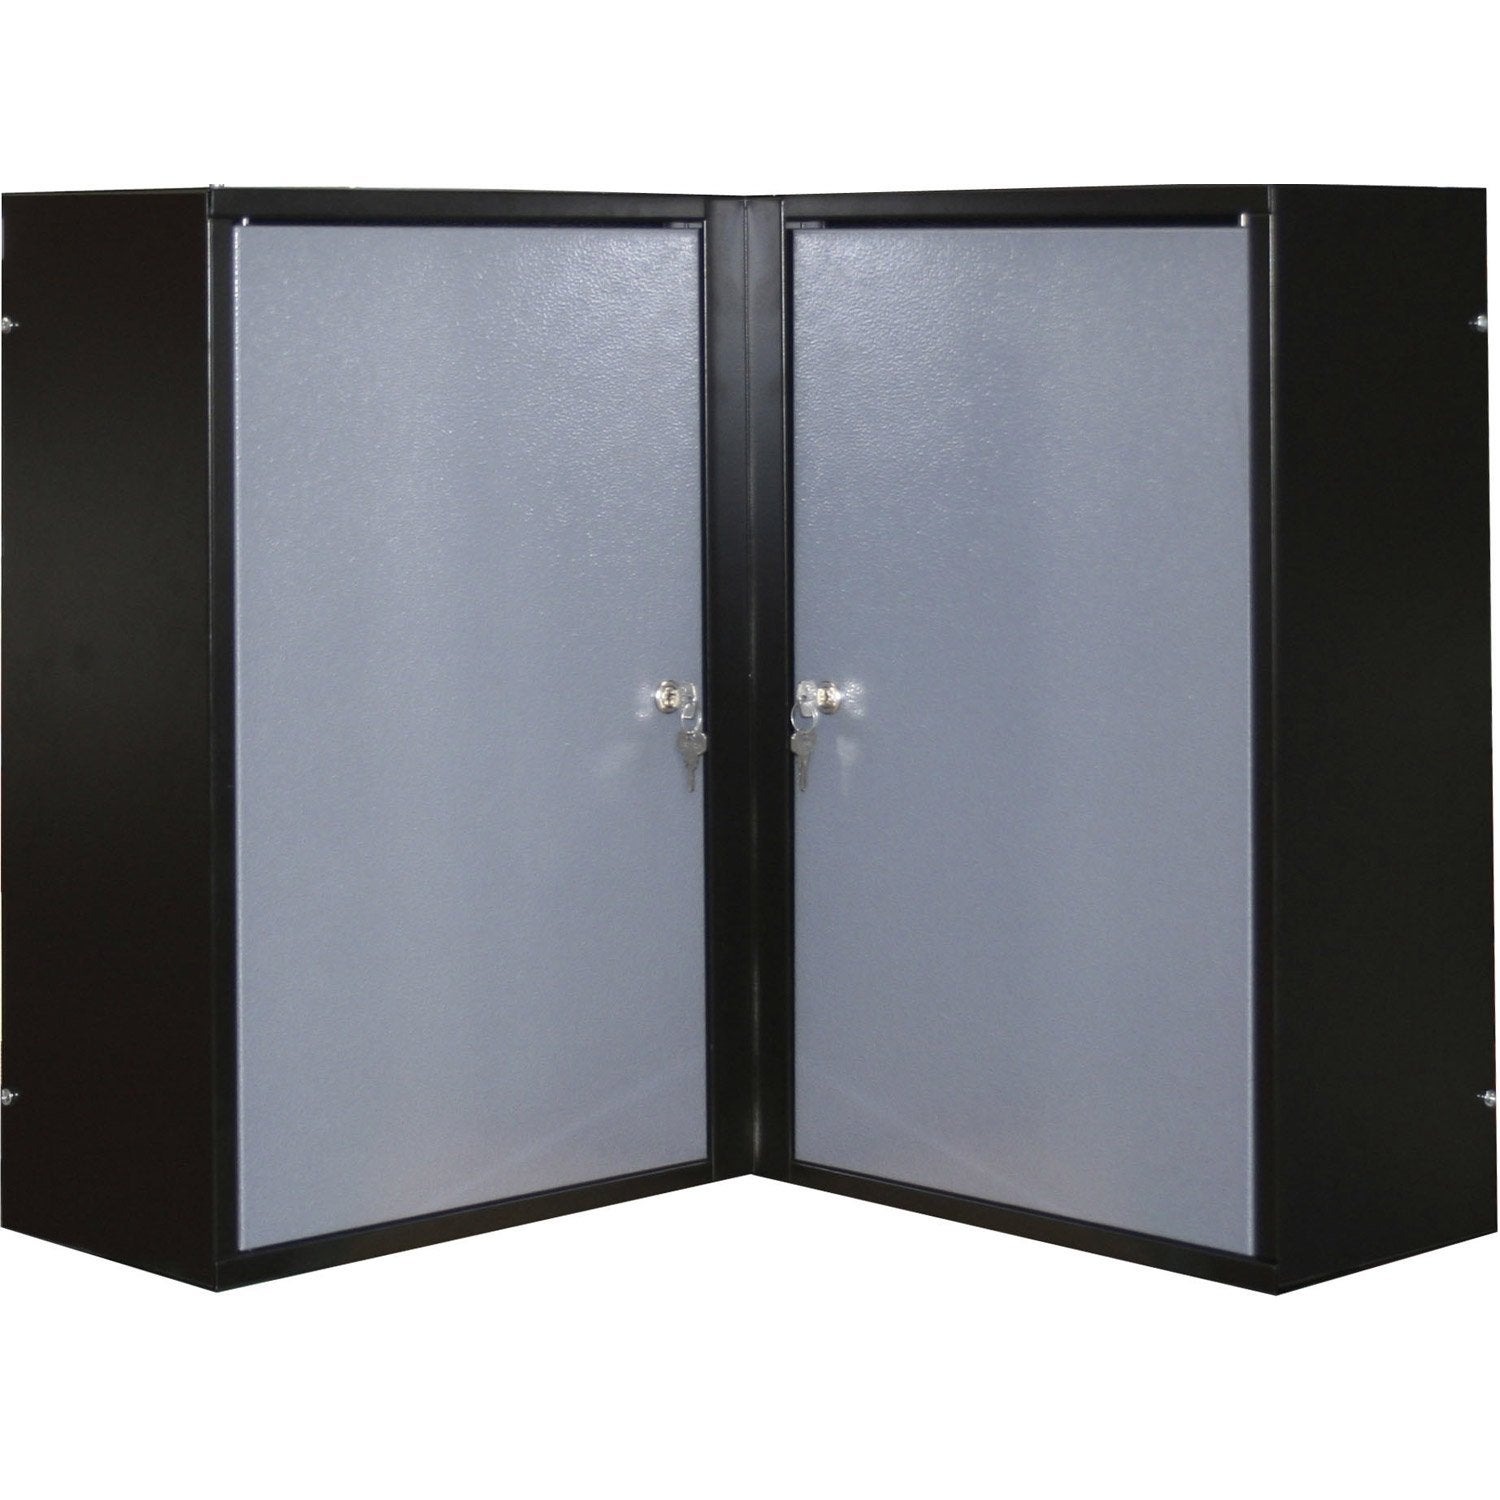 armoire de rangement pour angle en m tal gris clair kupper. Black Bedroom Furniture Sets. Home Design Ideas